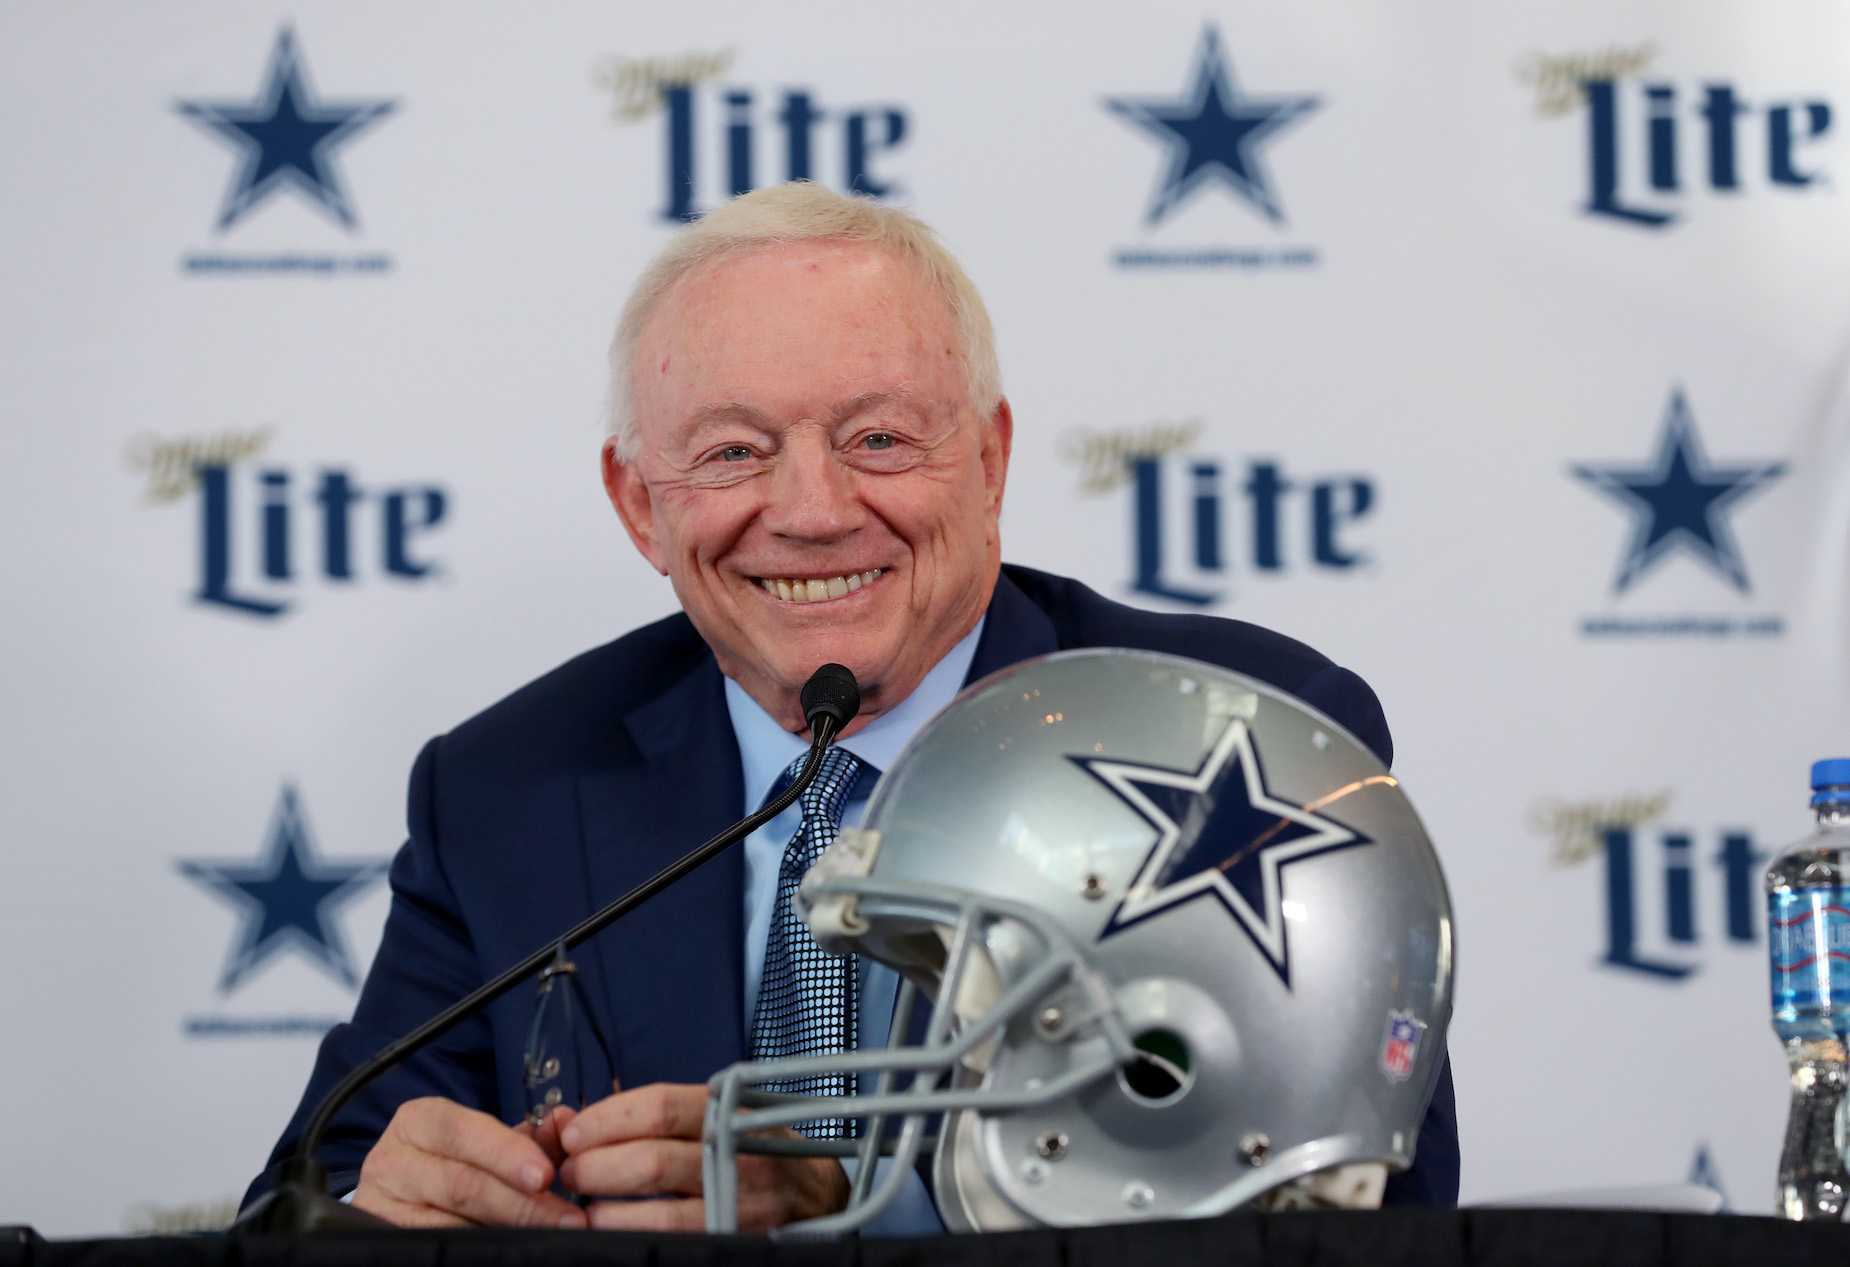 Dallas Cowboys owner Jerry Jones during a press conference